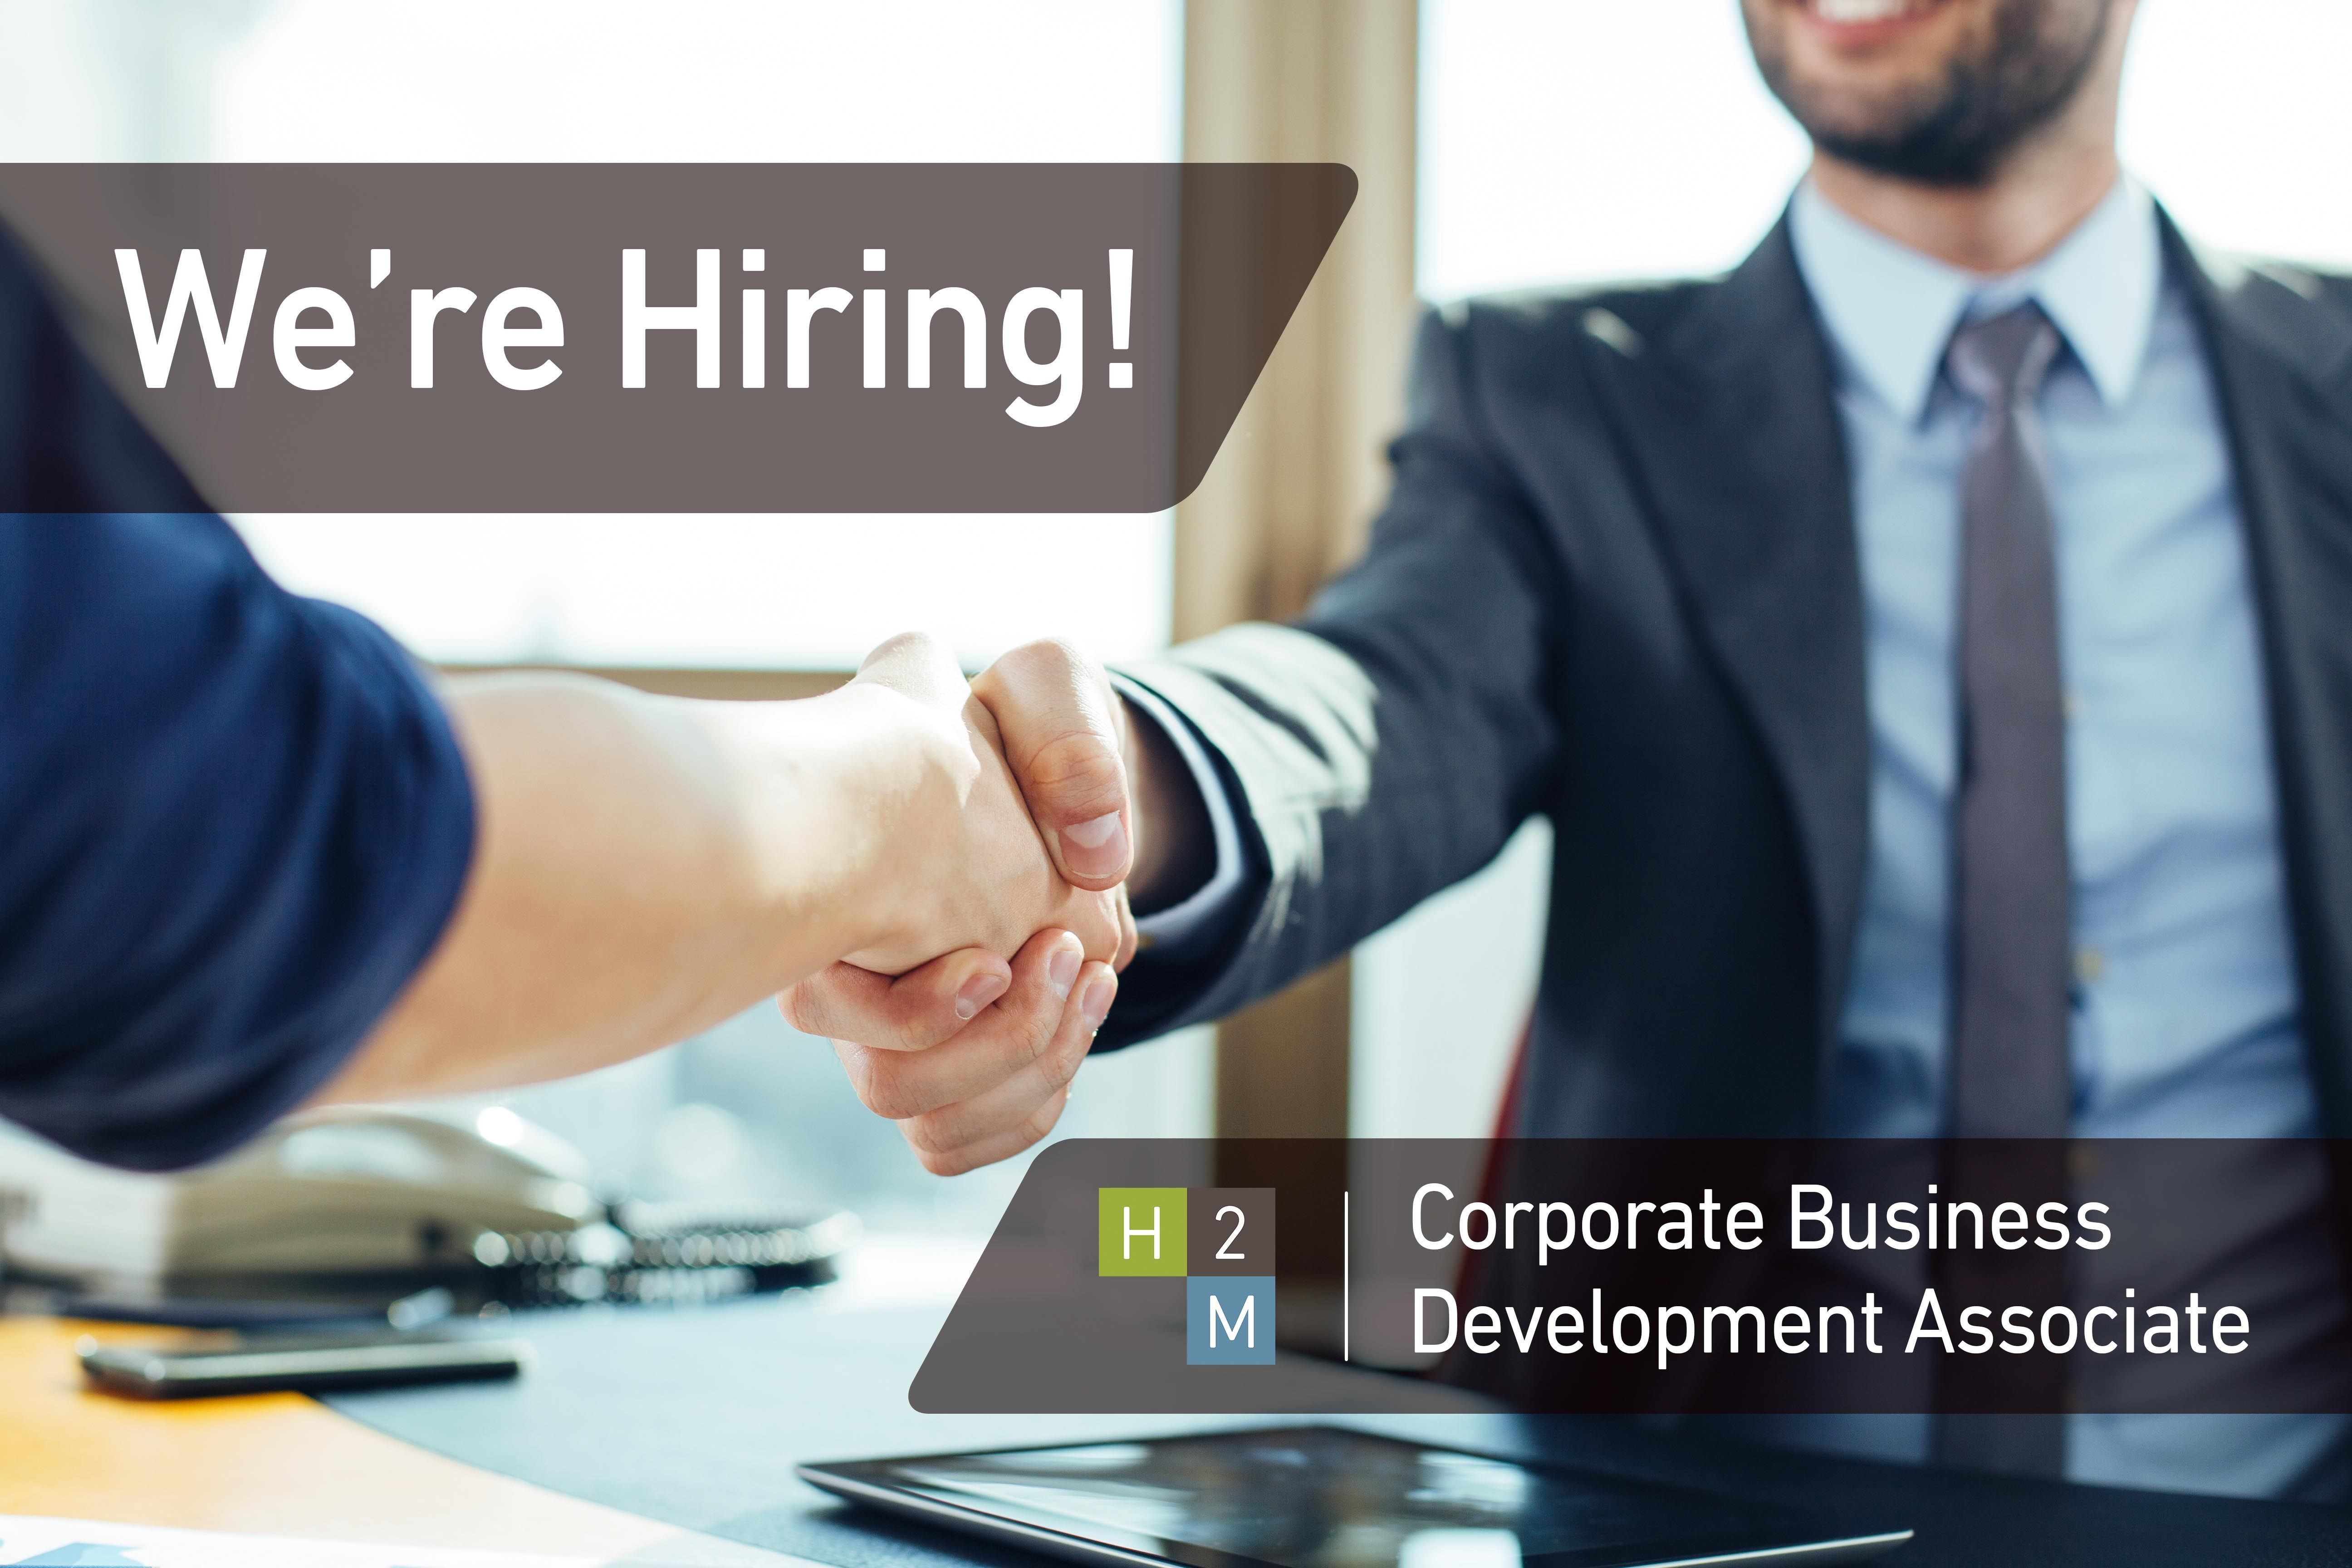 WeRe Hiring Corporate Business Development Associate Location